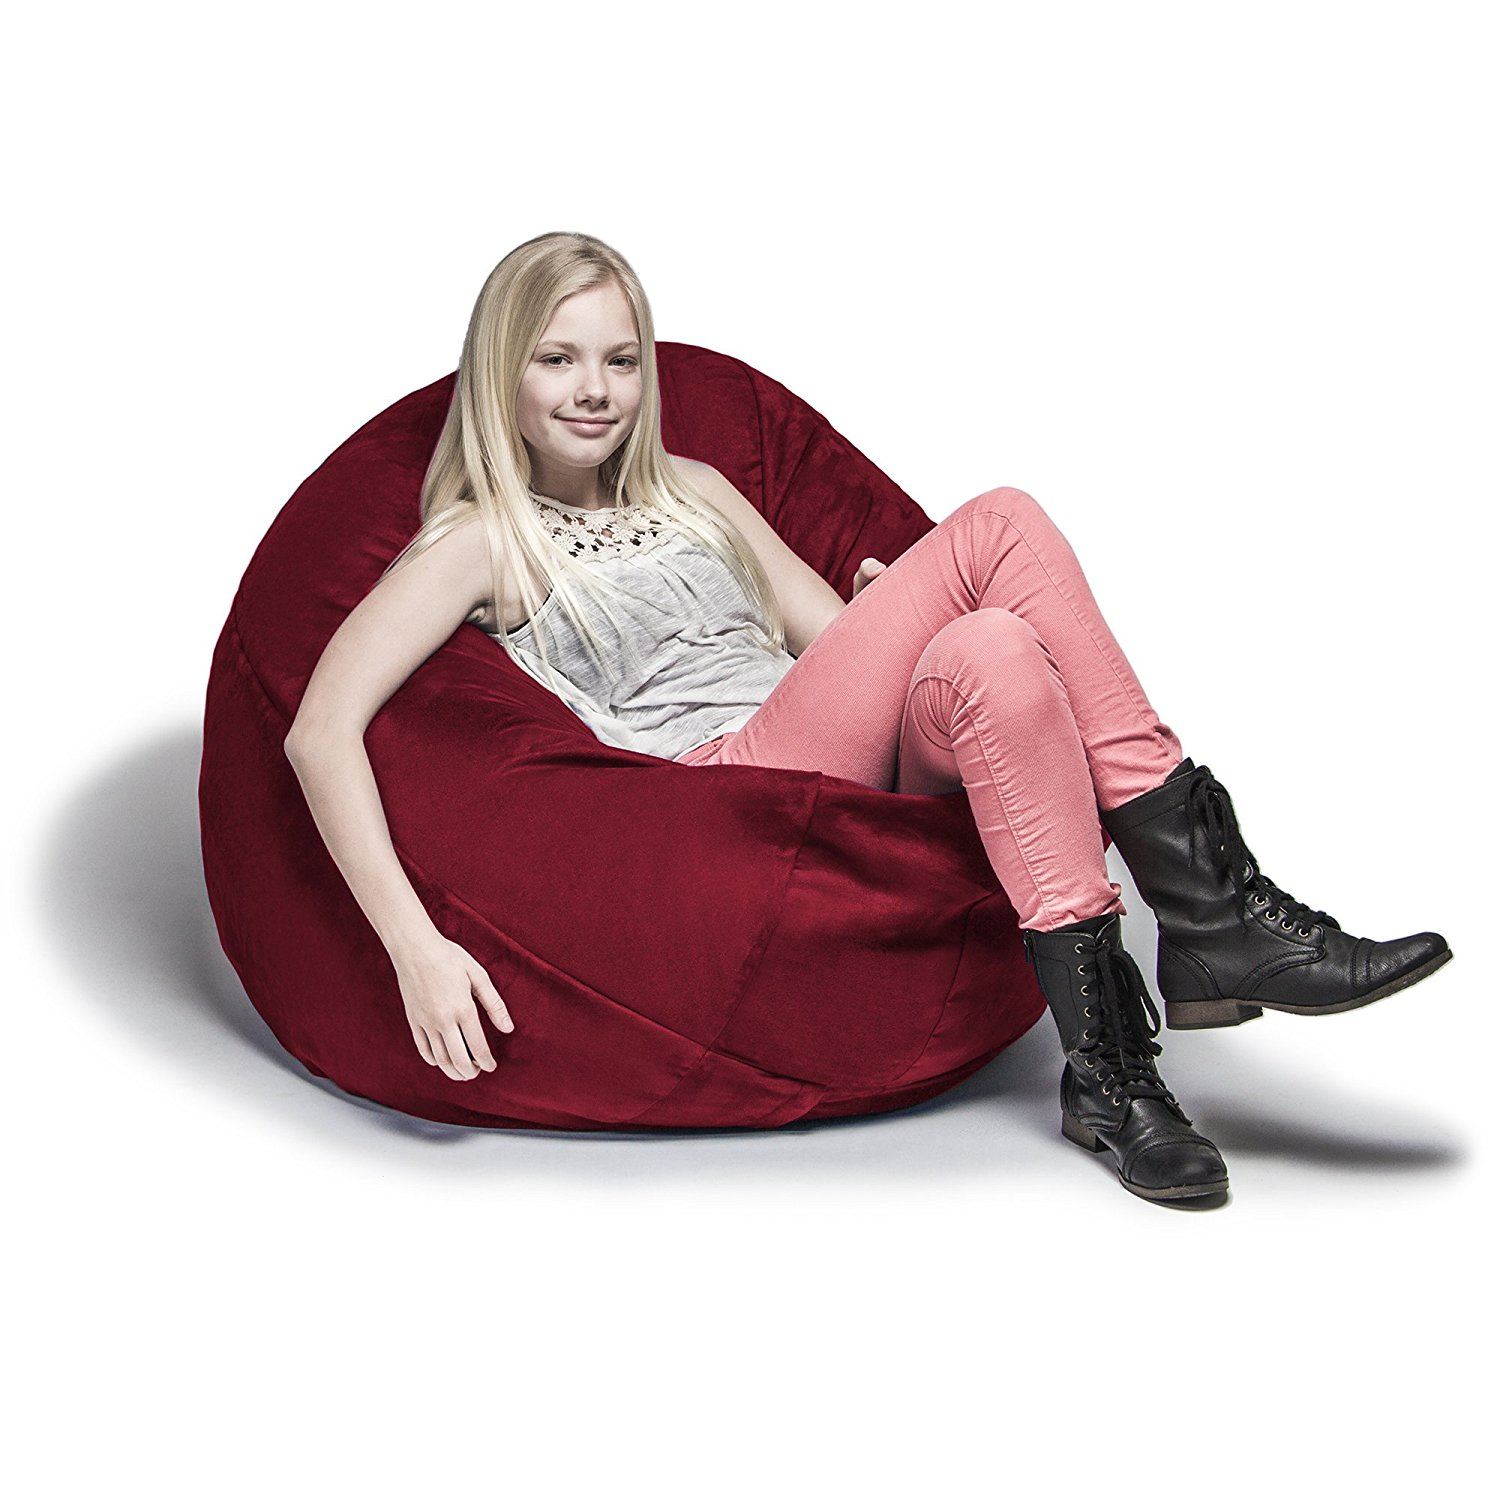 Jaxx Cocoon Jr Large 4 Foot Bean Bag For Kids Or Teens, Cherry